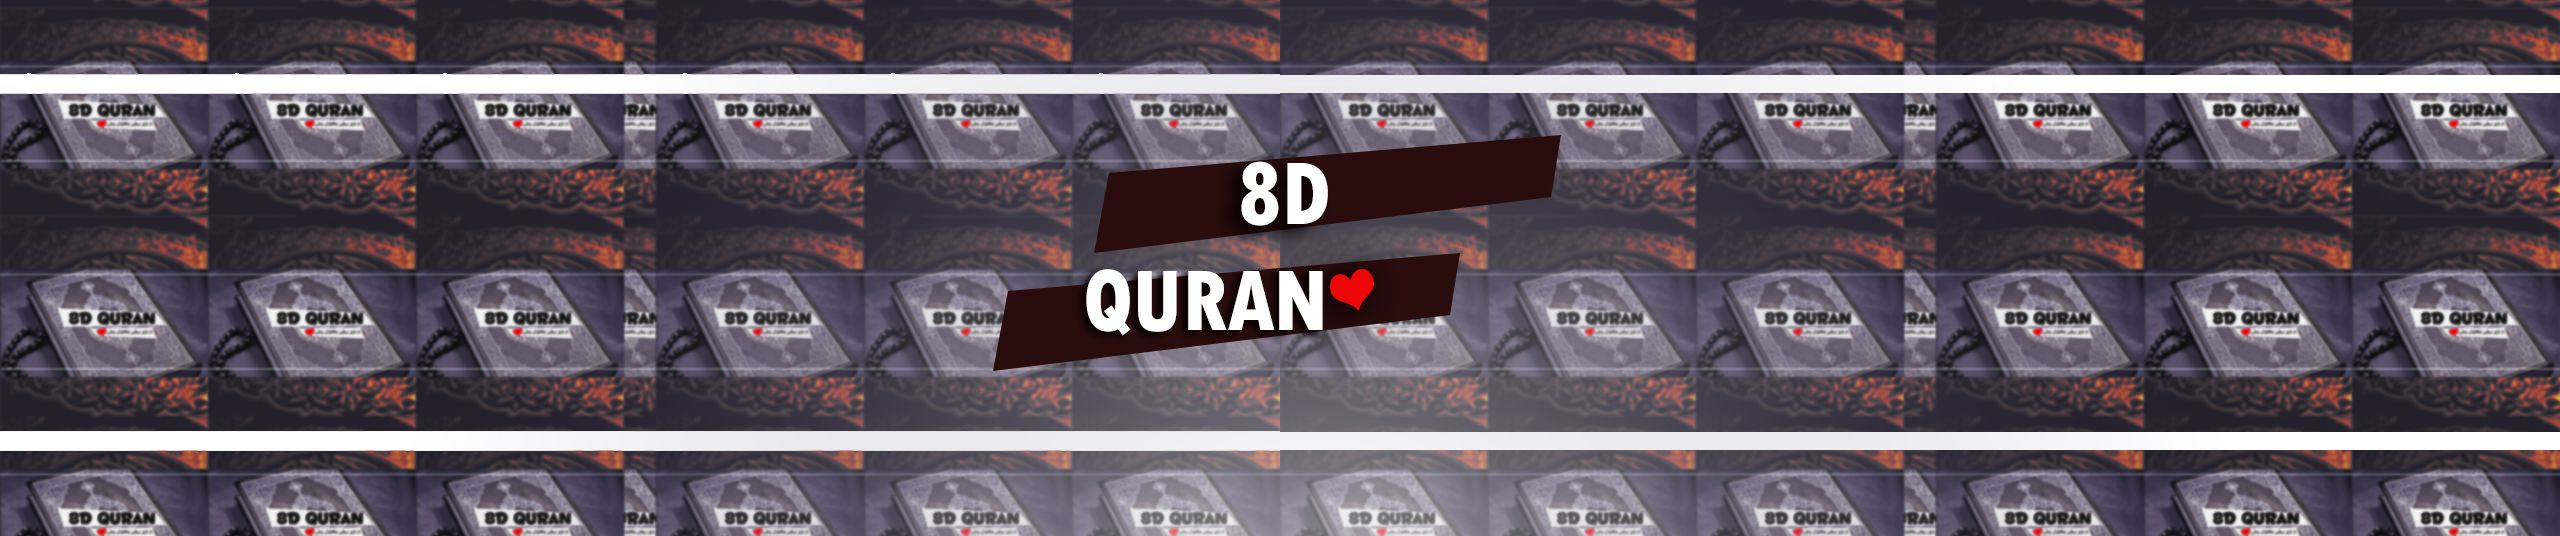 8D QURAN | Free Listening on SoundCloud